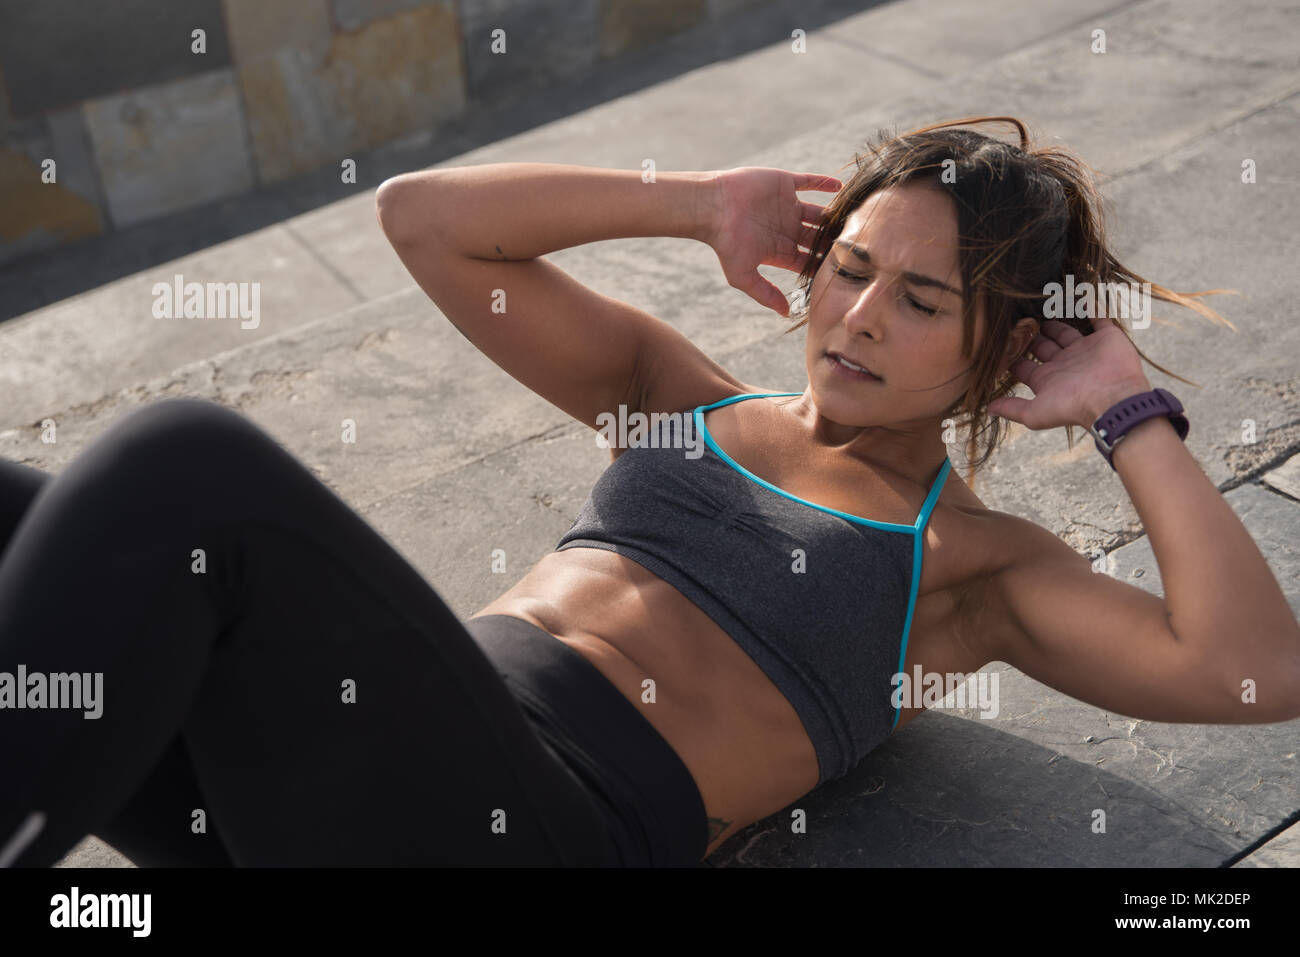 Healthy looking woman in fitness clothing training really hard with her legs bent and her arms behind her head - Stock Image